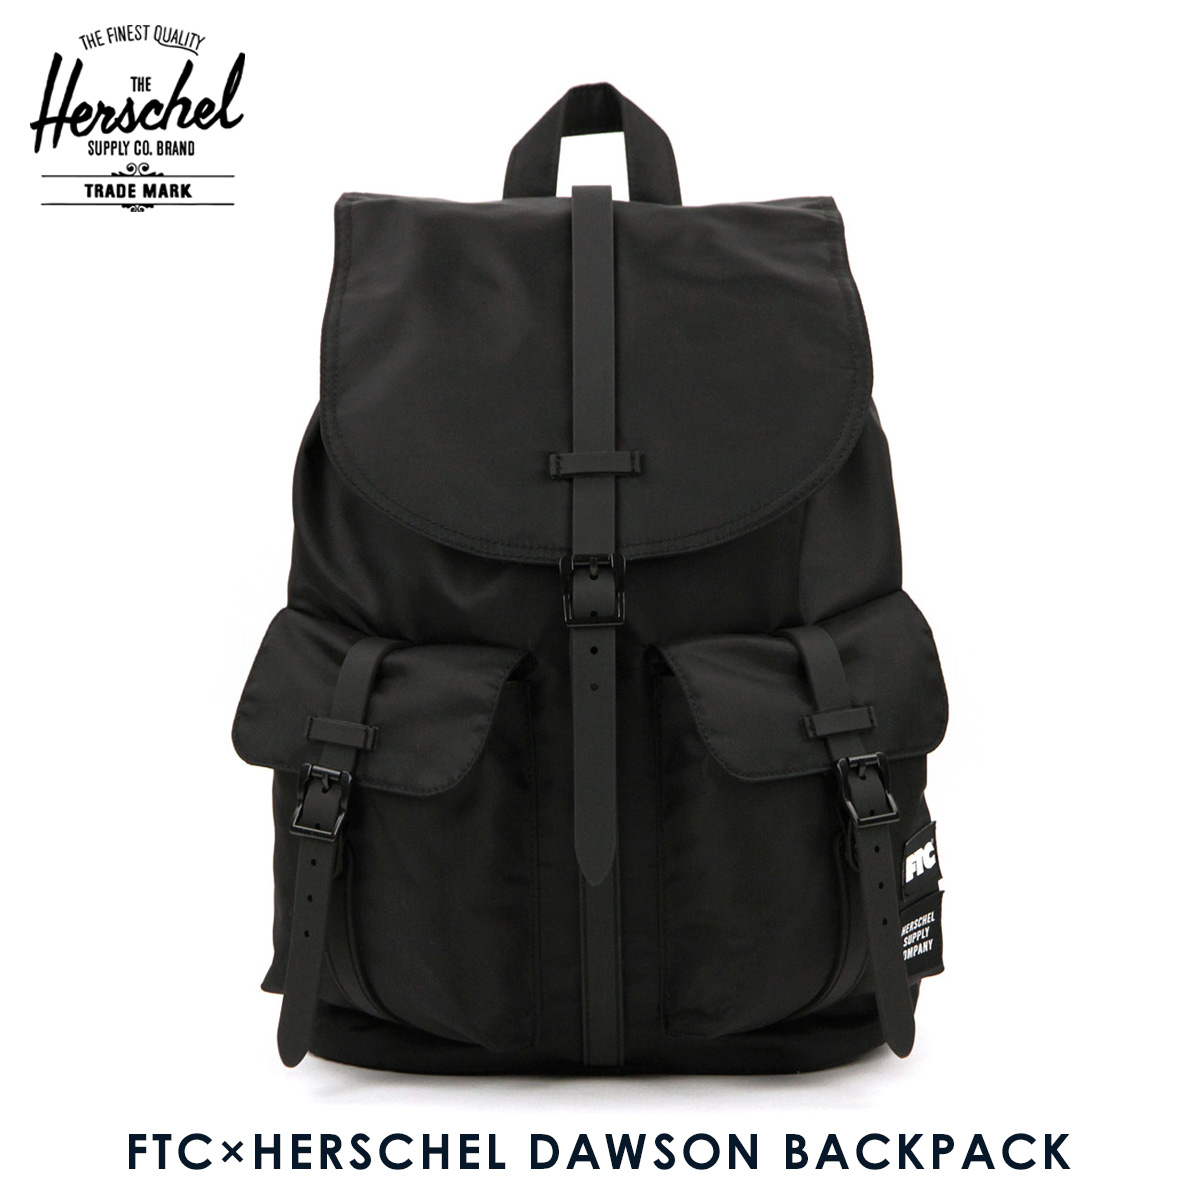 Hershel Herschel bag backpack FTC x HERSCHEL DAWSON BACKPACK  FTC018HSA01BLACK 20.5L 35d054ba7ba4f